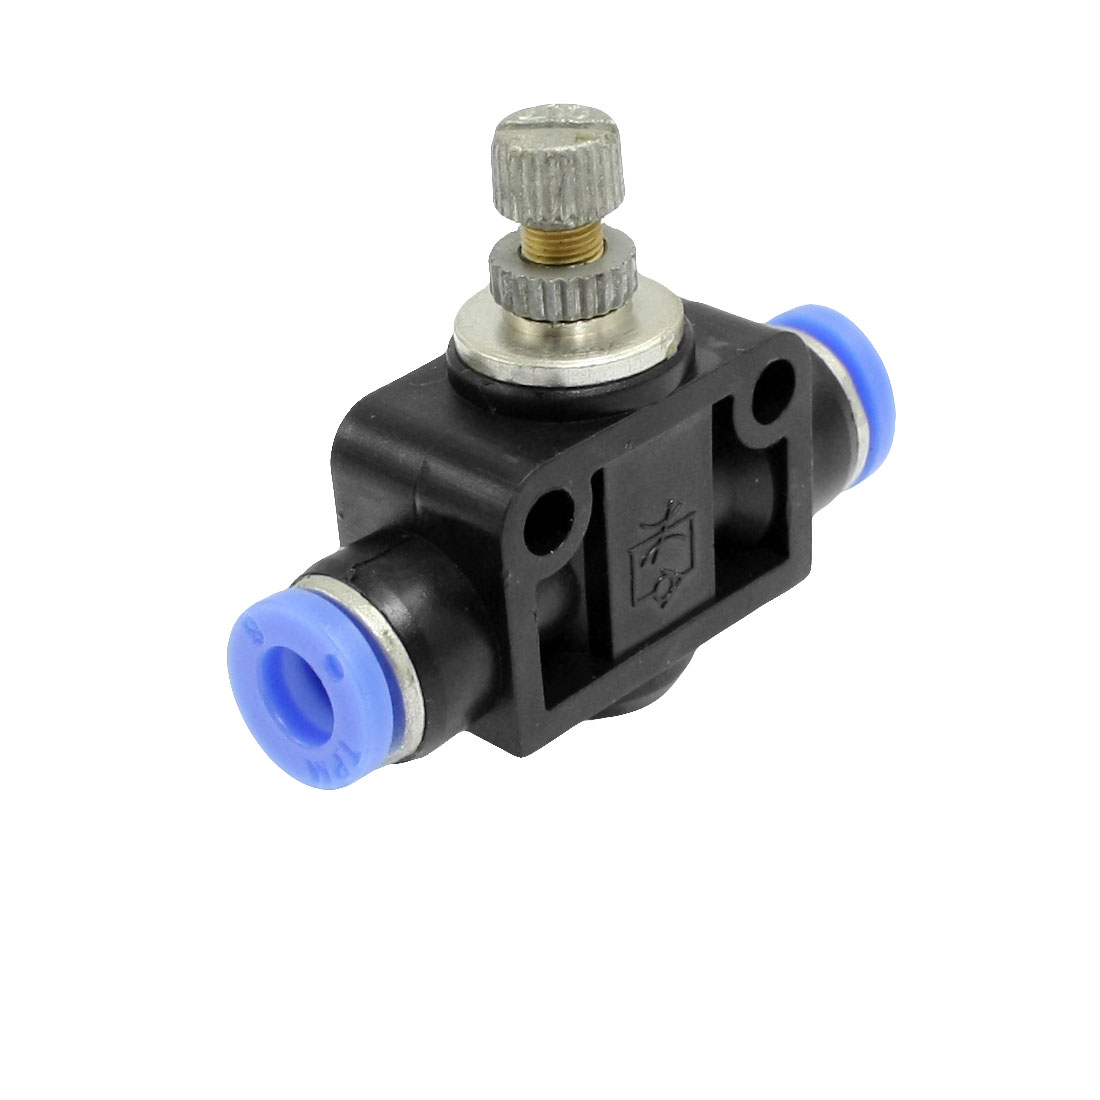 6mm to 6mm Push In Quick Connector Air Pneumatic Speed Controller